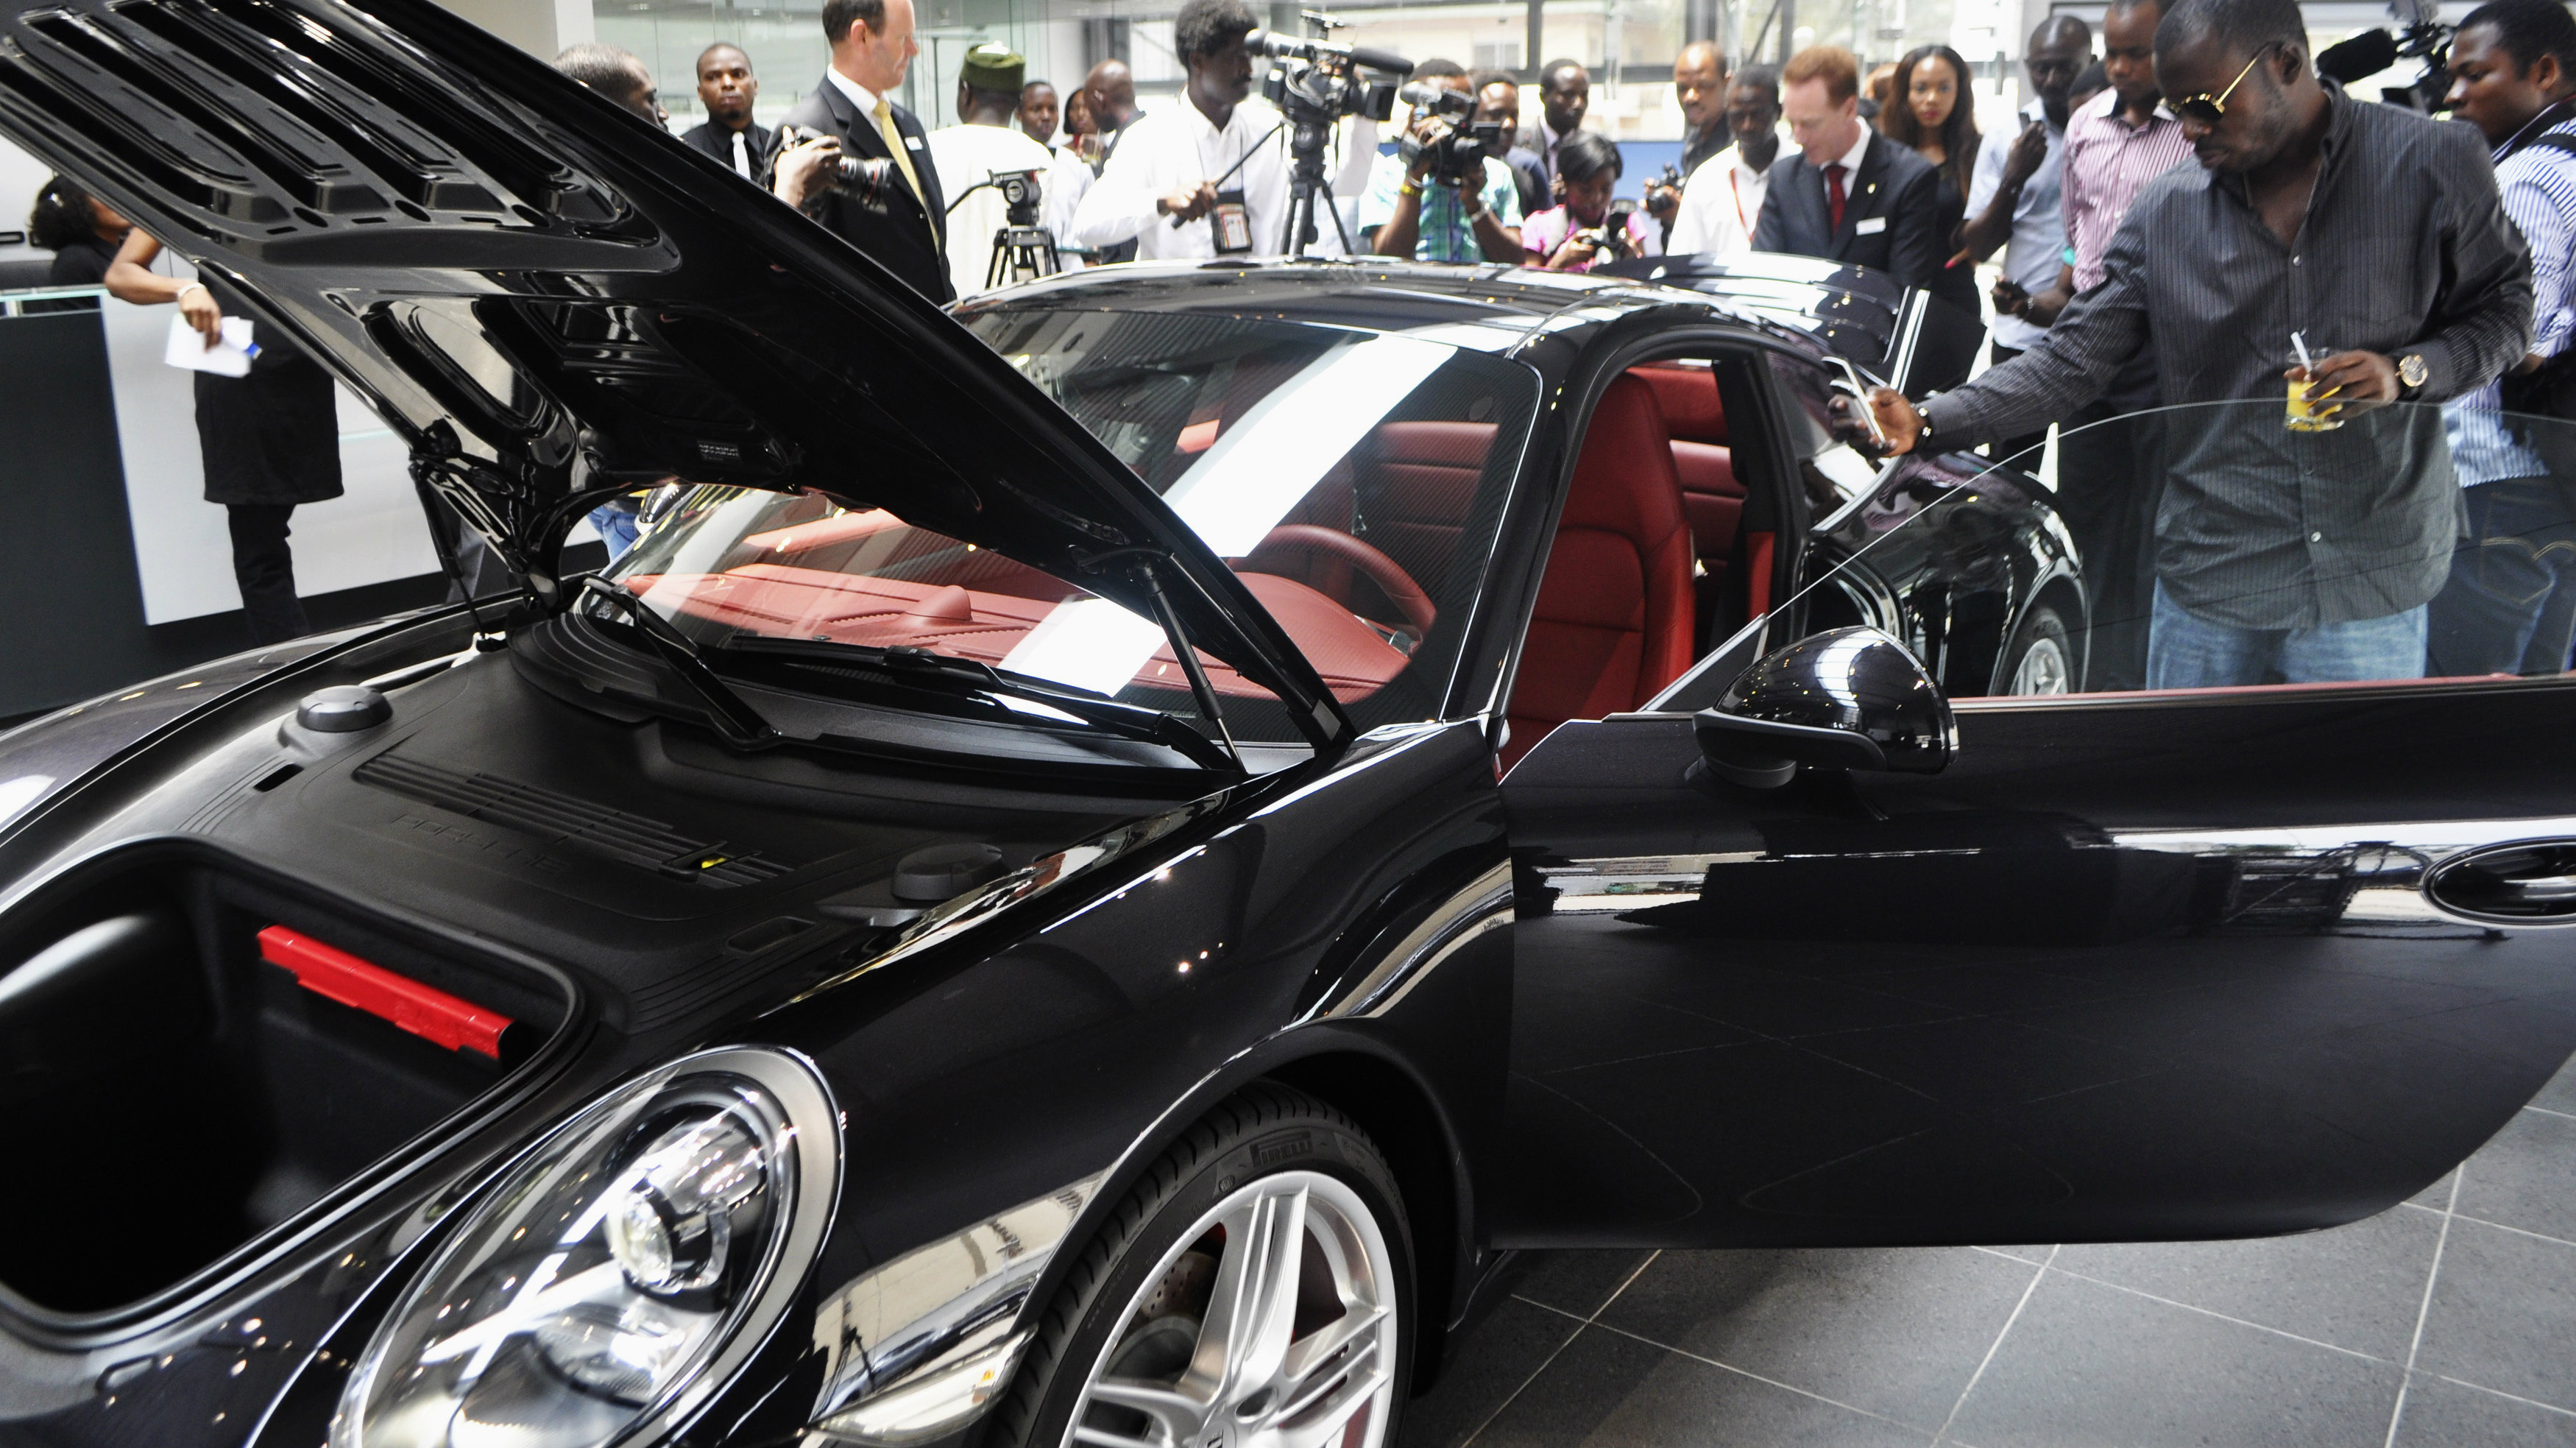 In 35 years, Nigeria could be the automotive capital of Africa — Quartz